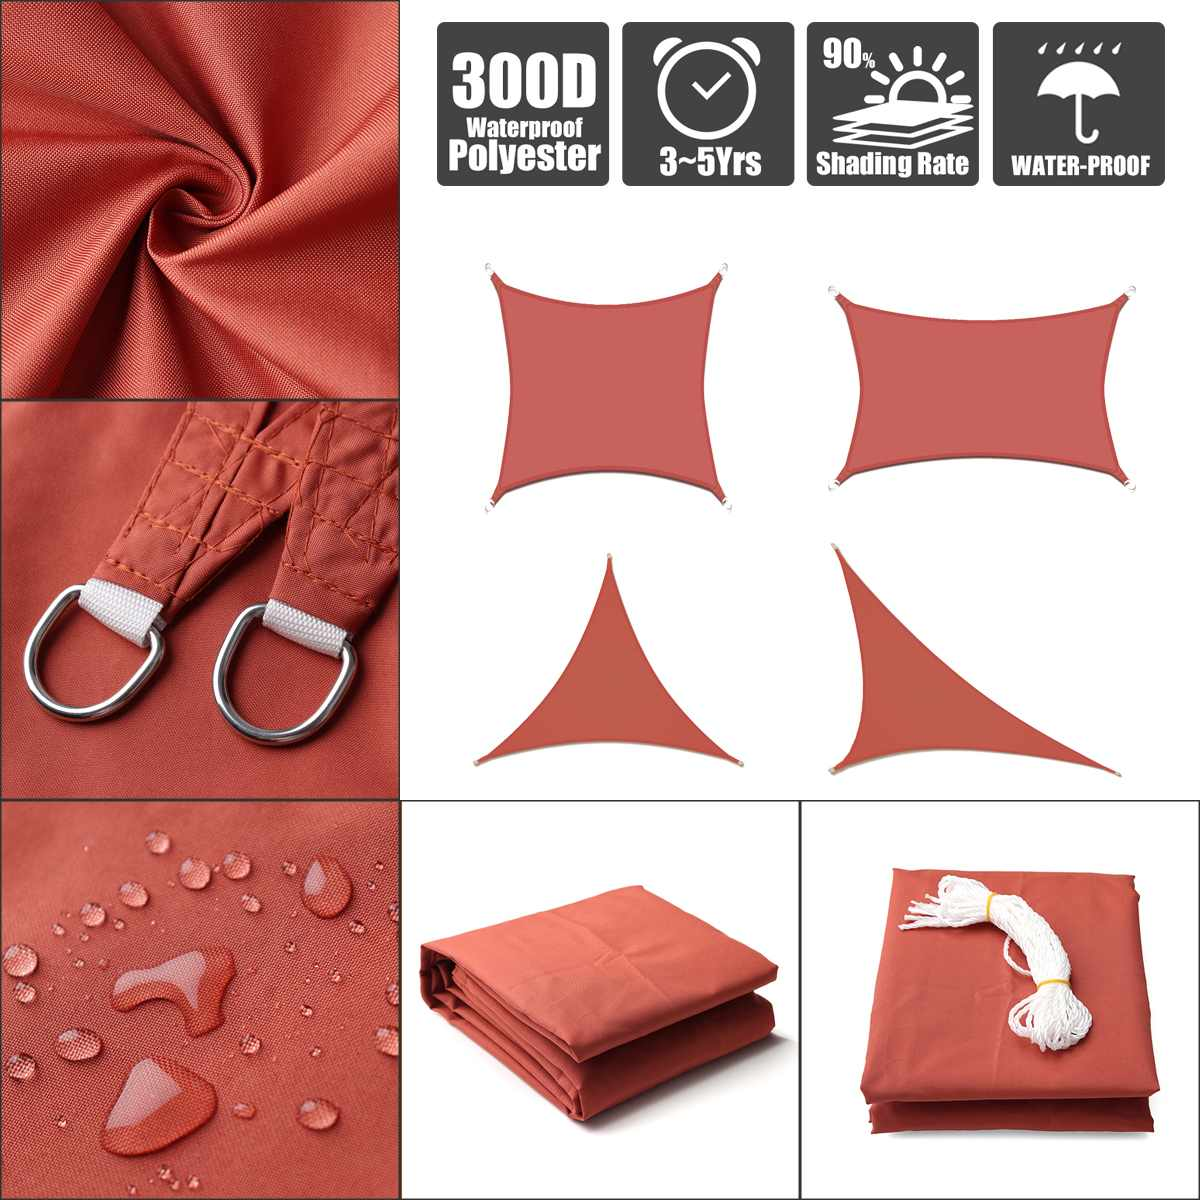 300D Waterproof Polyester Awning Regular Triangle Extra Heavy  Shade Sail Sun Outdoor  Sun Shelter For Garden Camping Tents